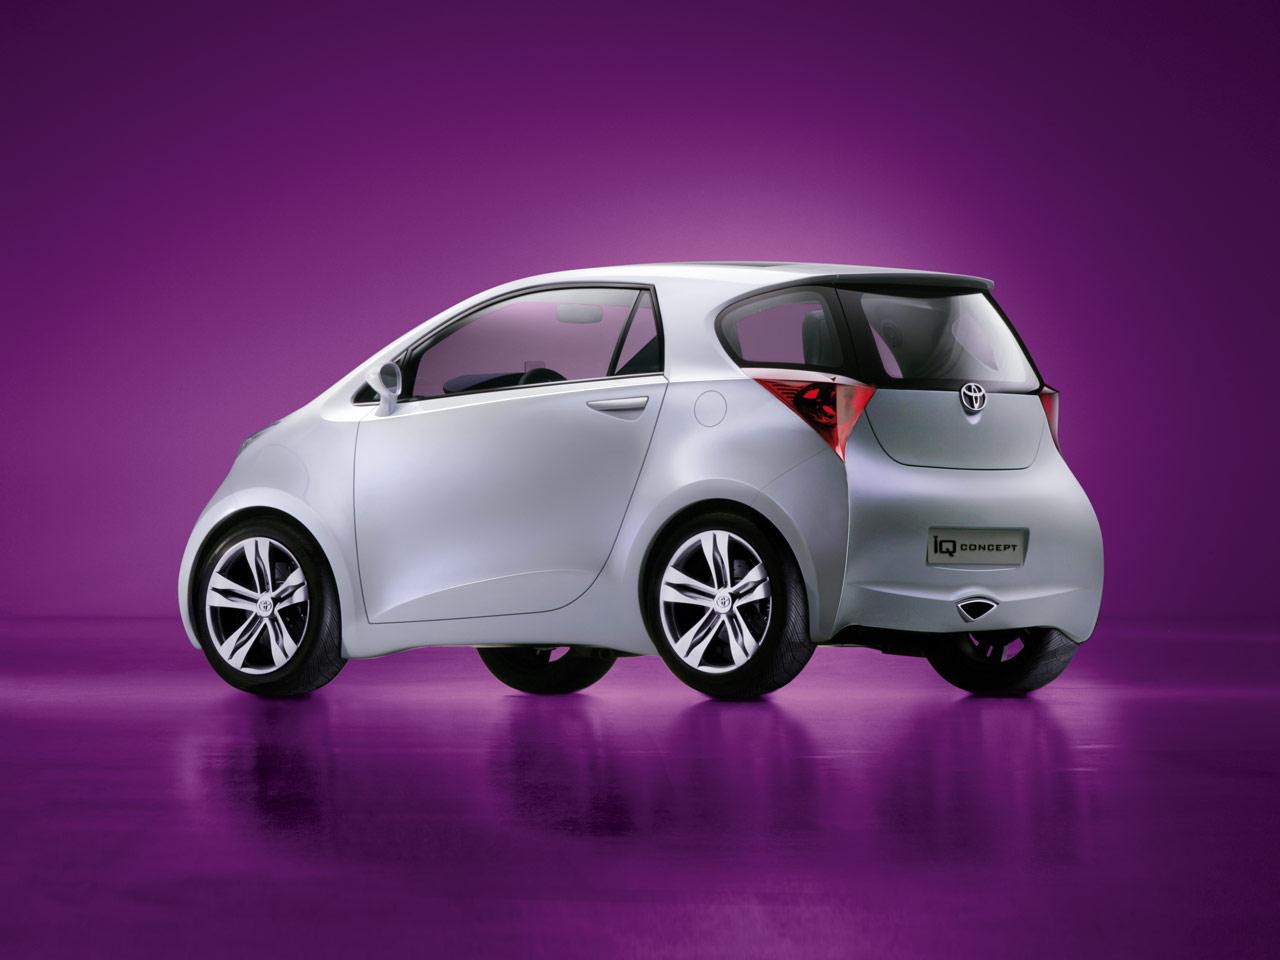 Toyota Iq Mini Car New Car Modification Review New Car